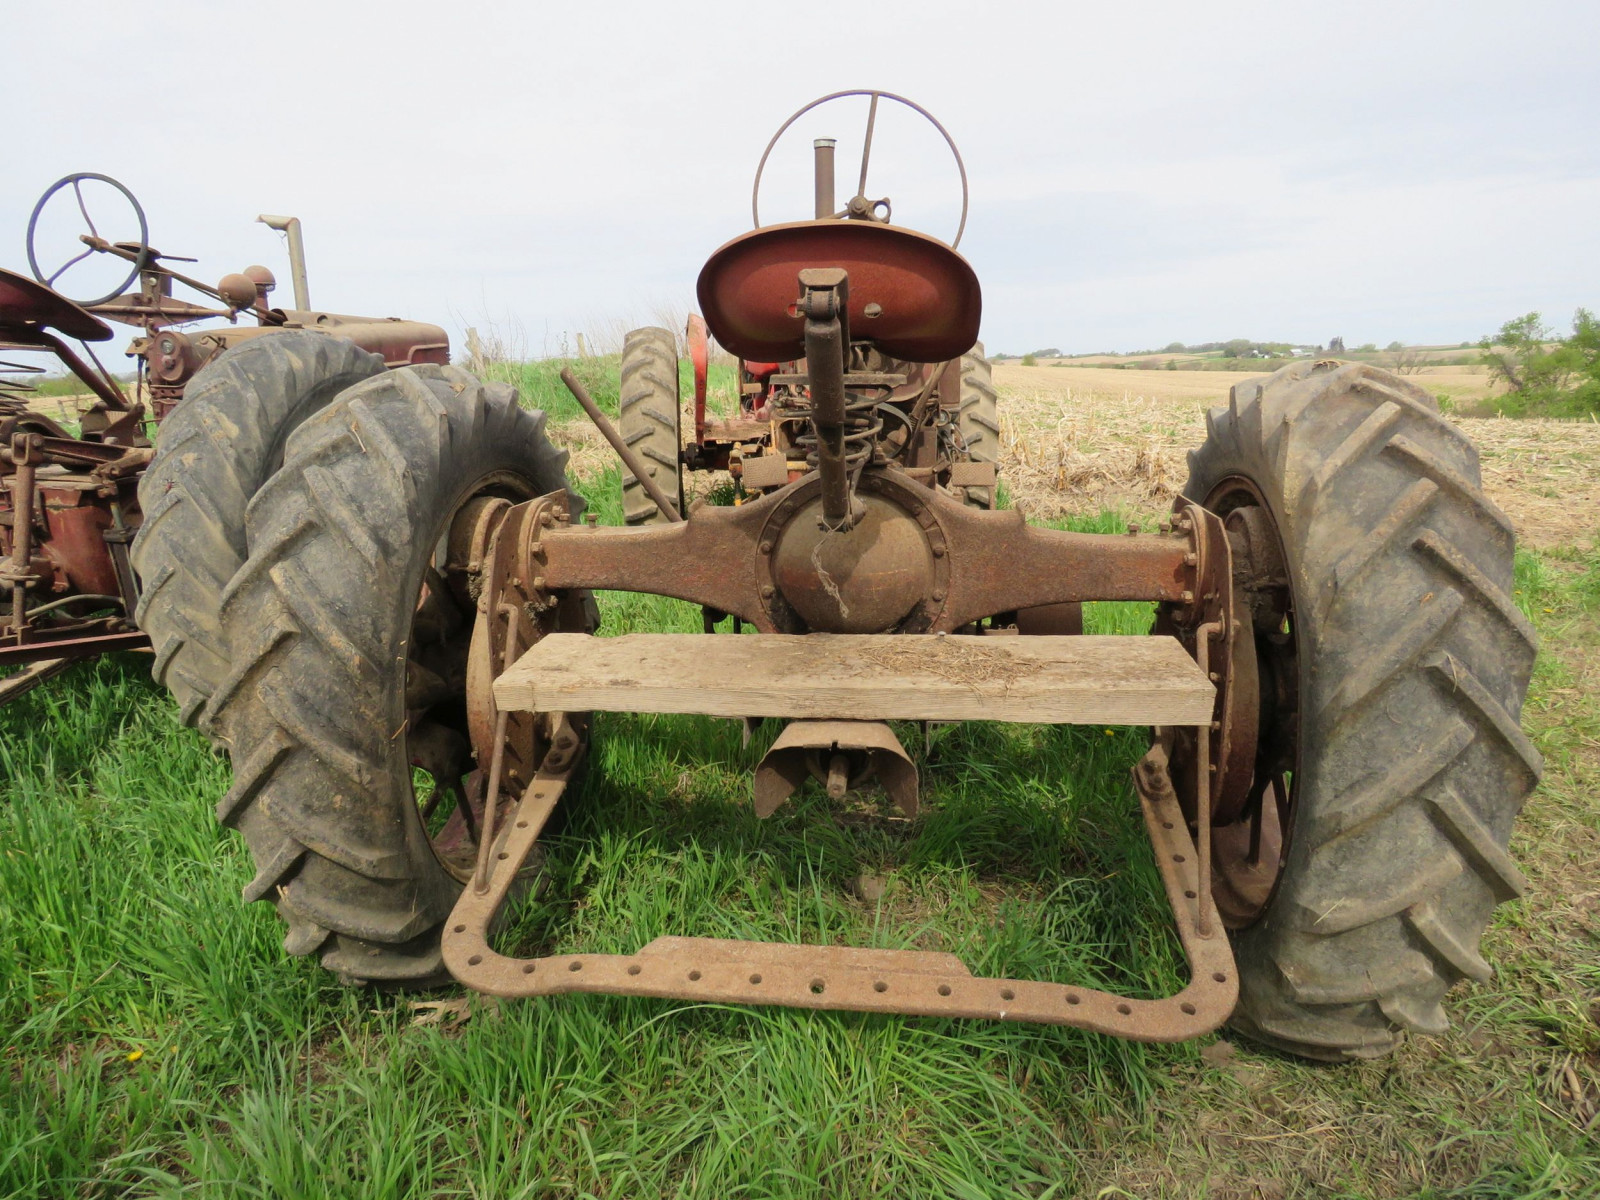 Farmall F-20 for Project or parts - Image 2